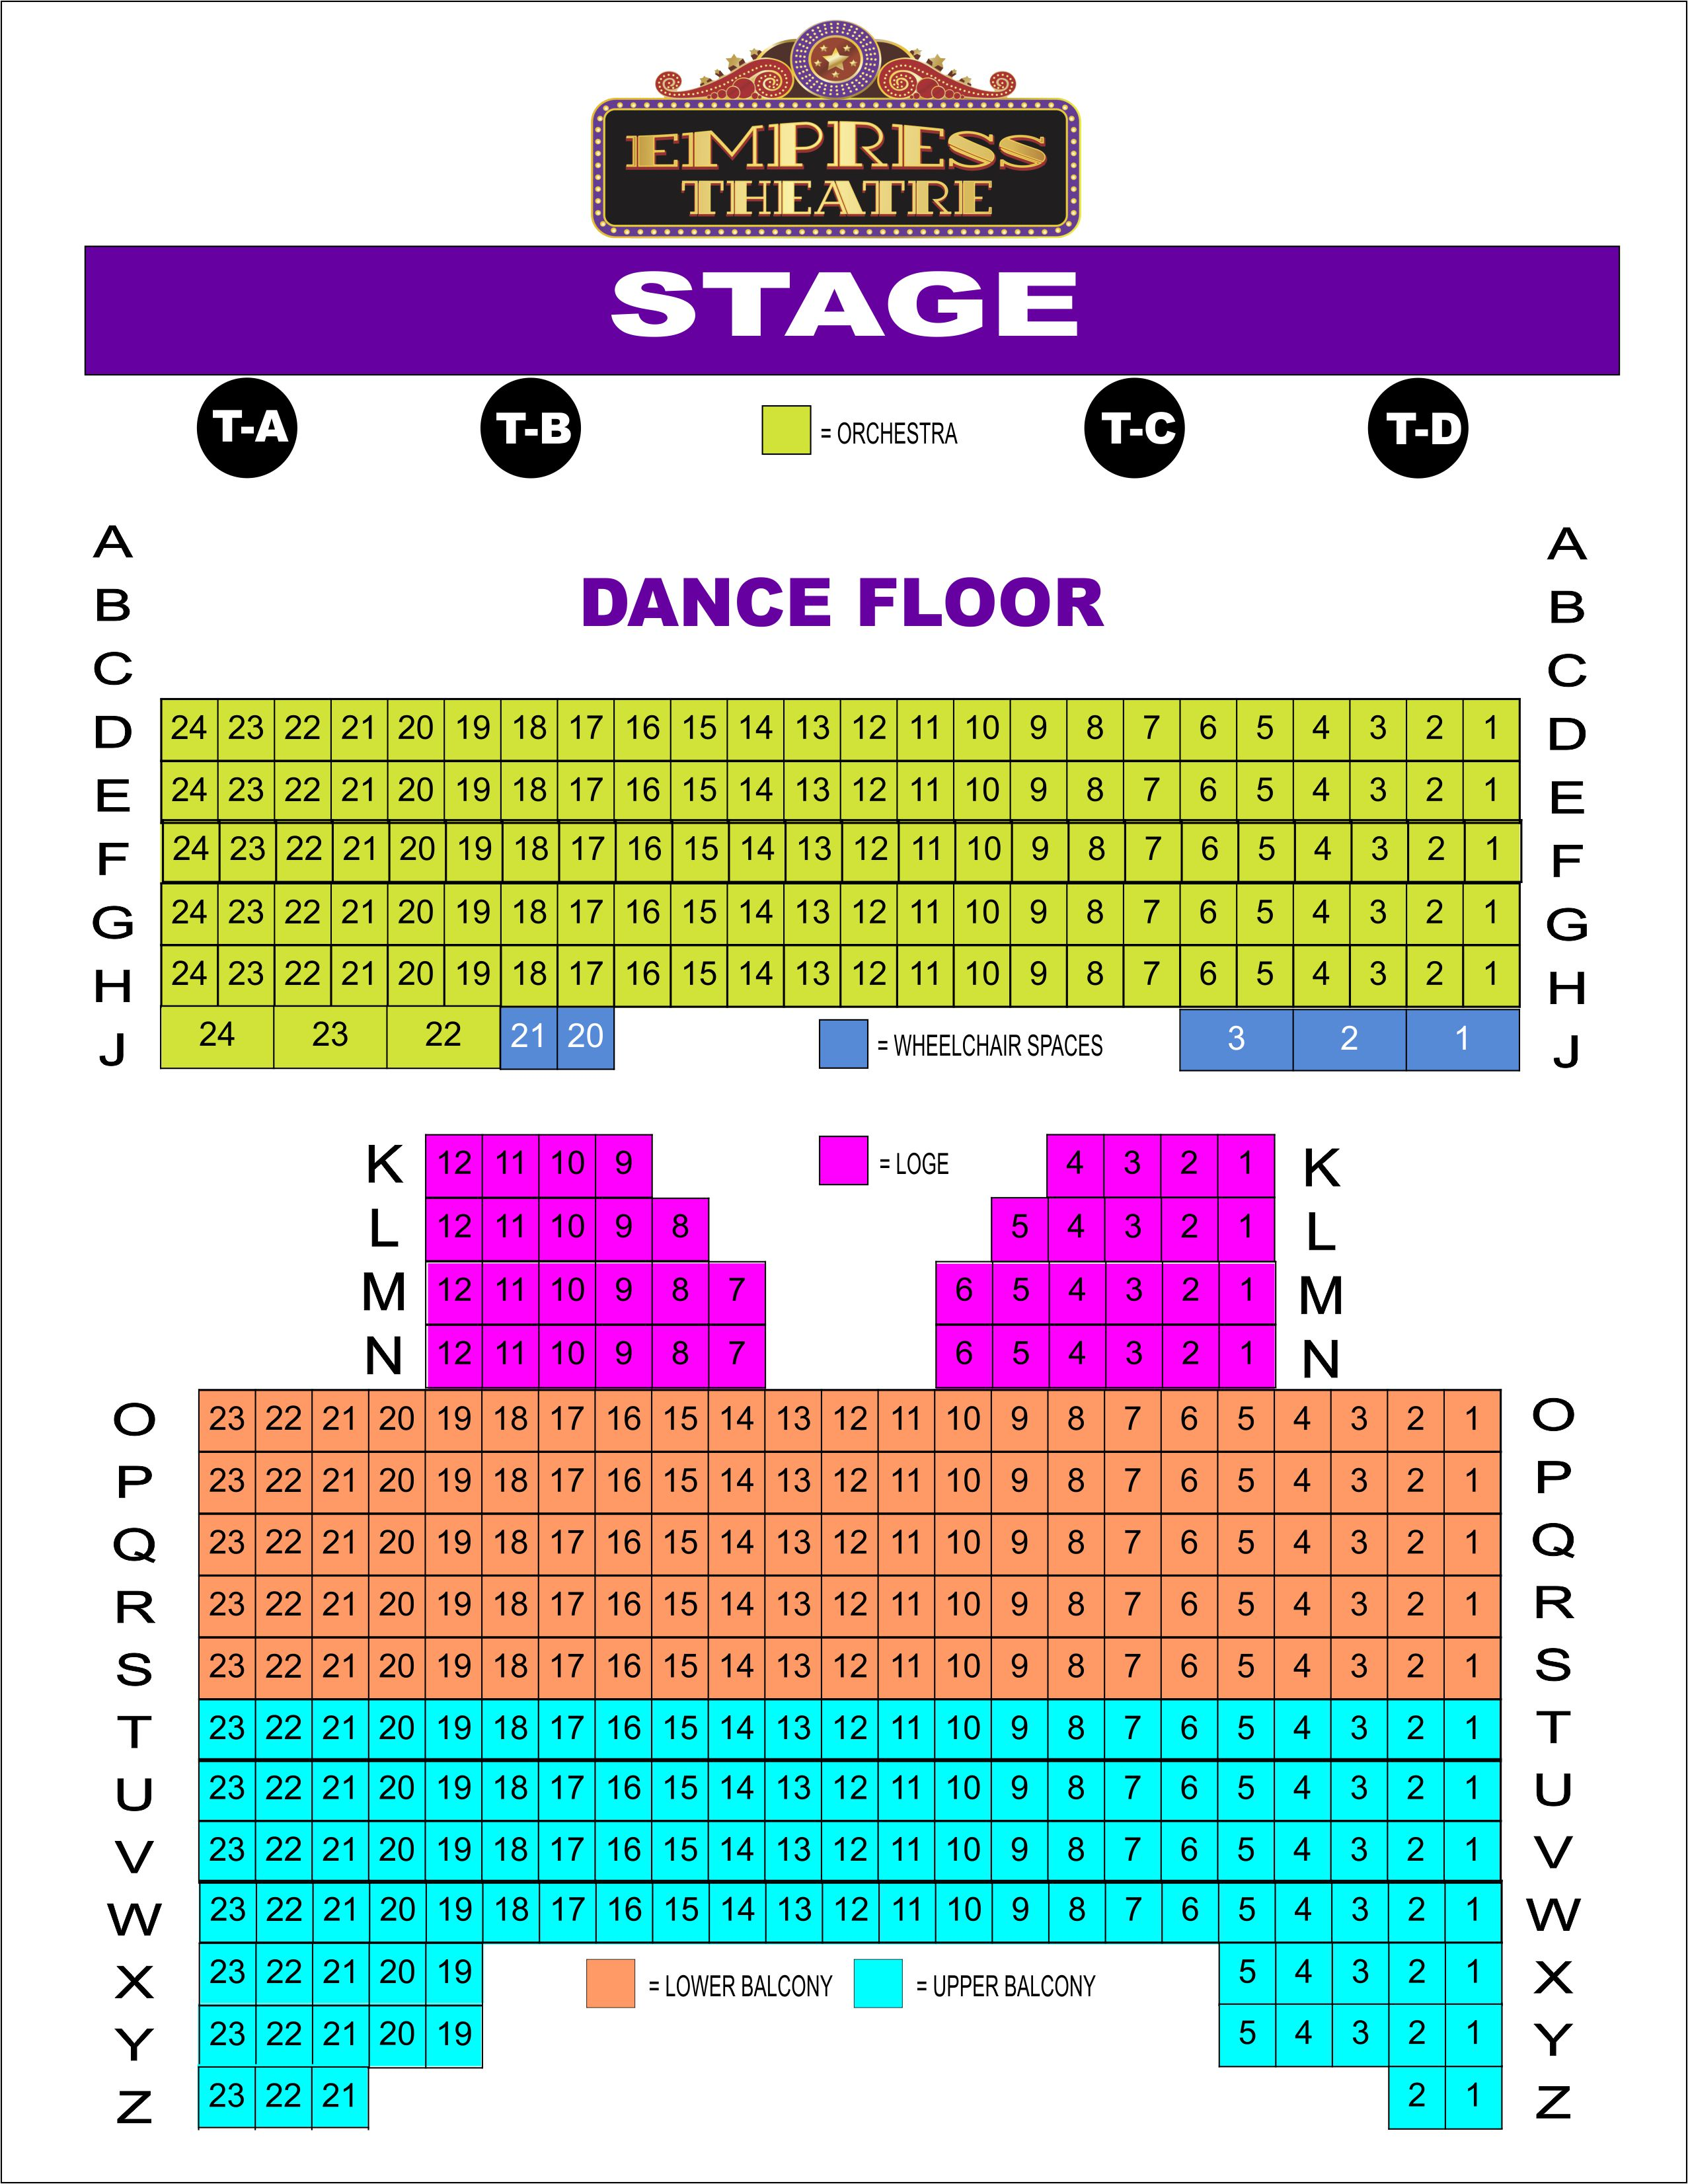 Empress Theatre - Seating Layout with Tables & Dance Floor